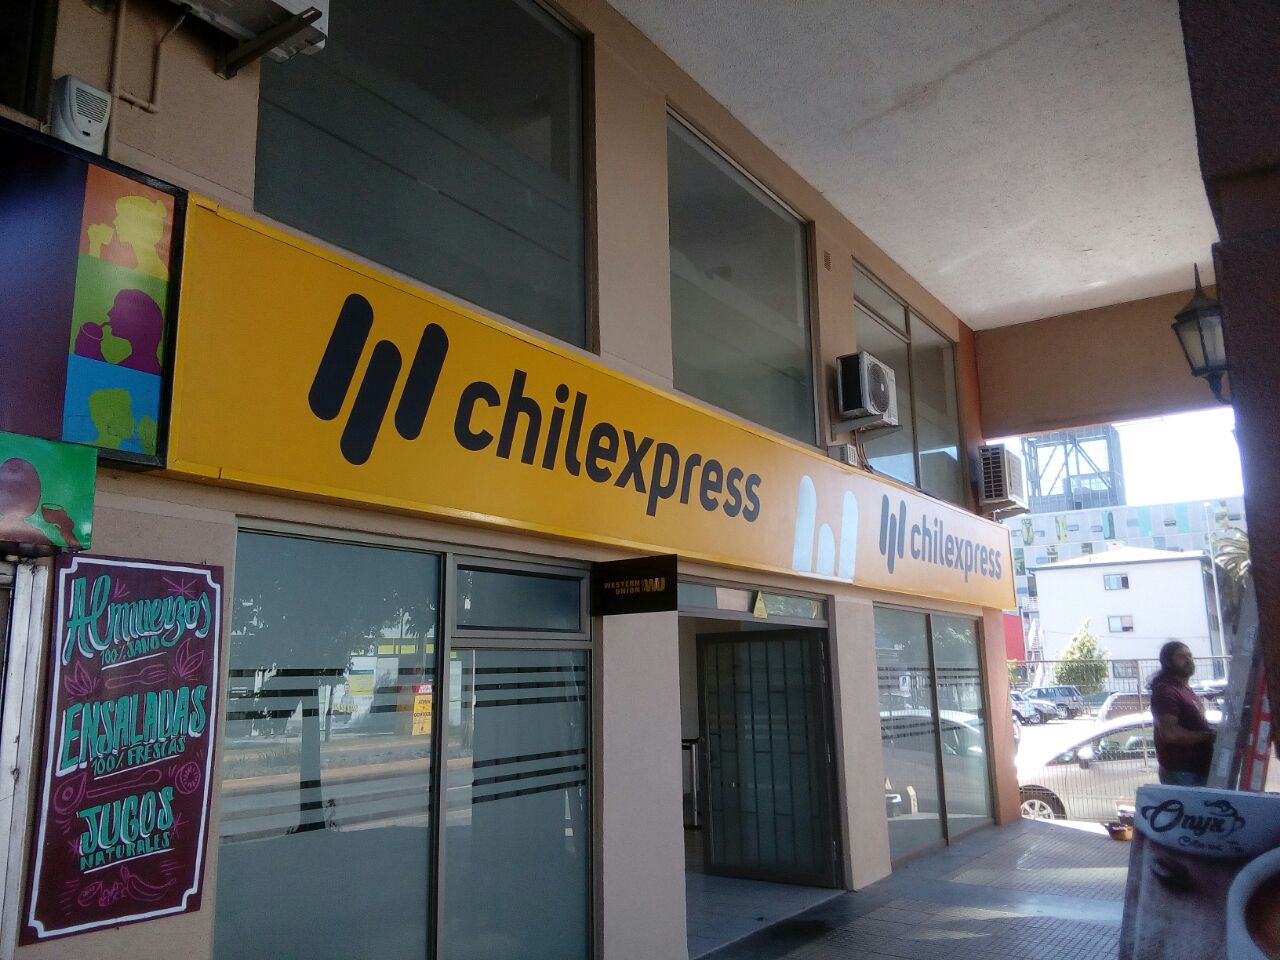 DPImpress - Letreros Concepción Chilexpress